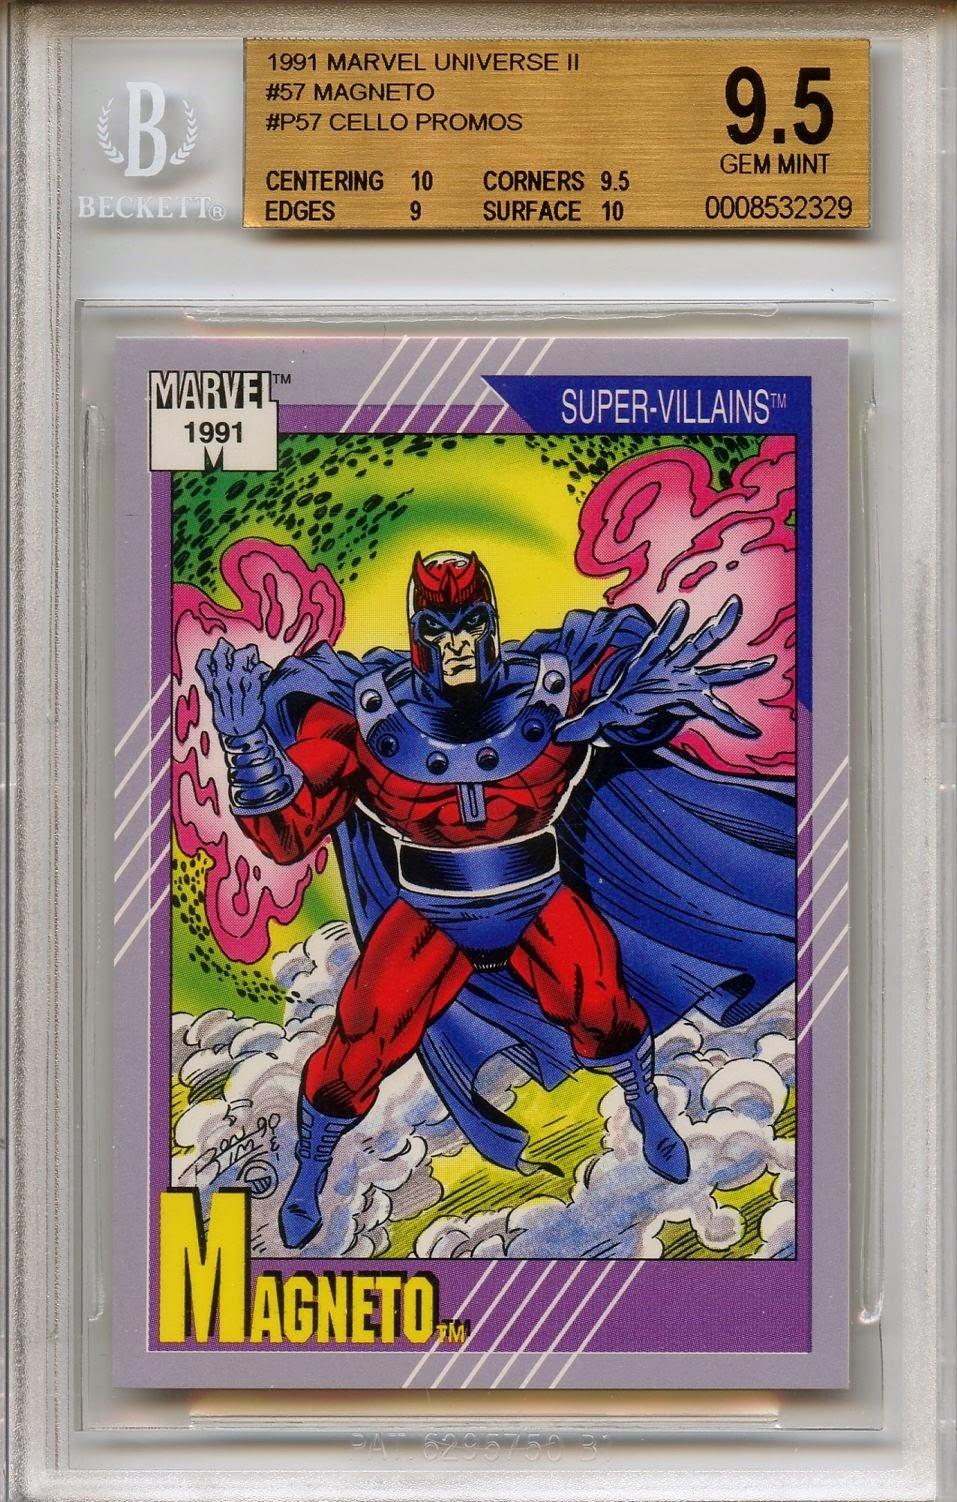 Graded Marvel Cards March 2015